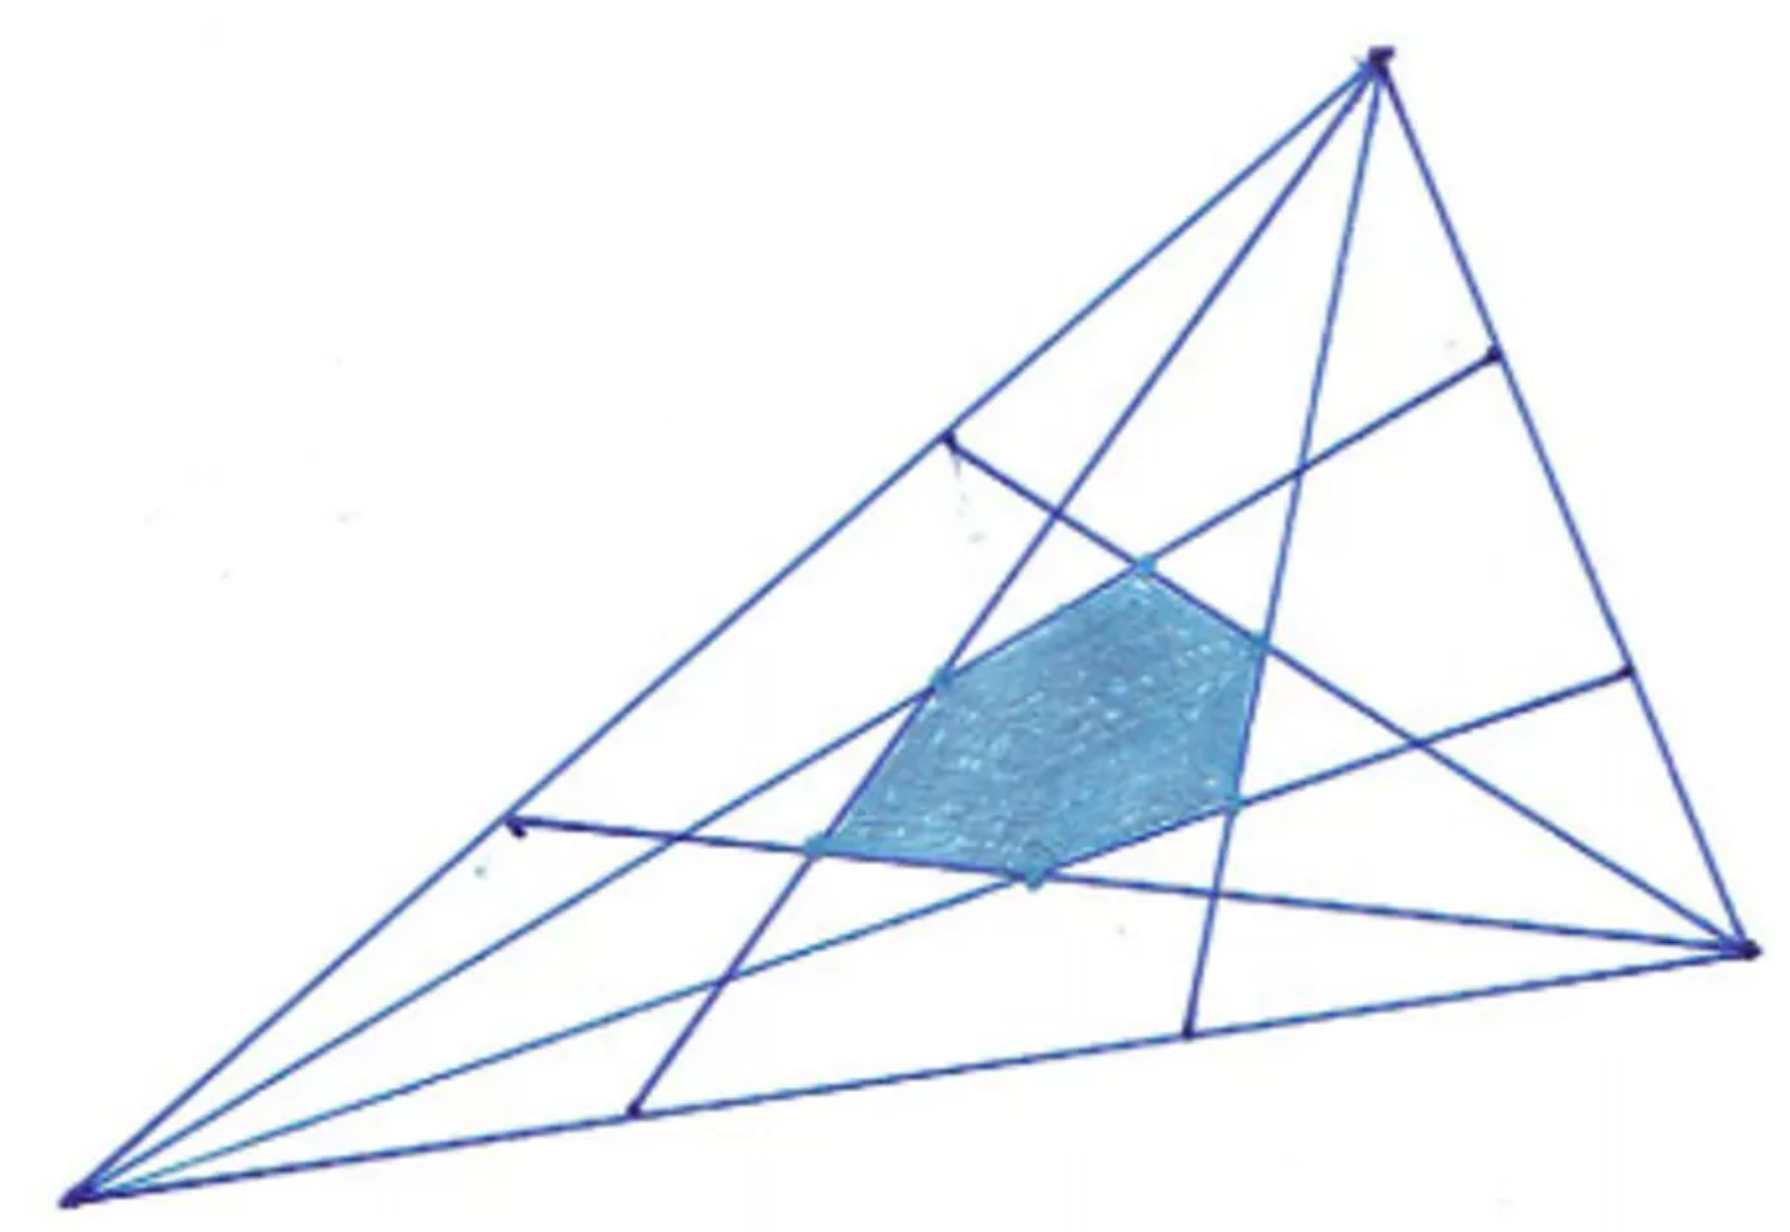 - A visual depiction of Marion Walter's Theorem